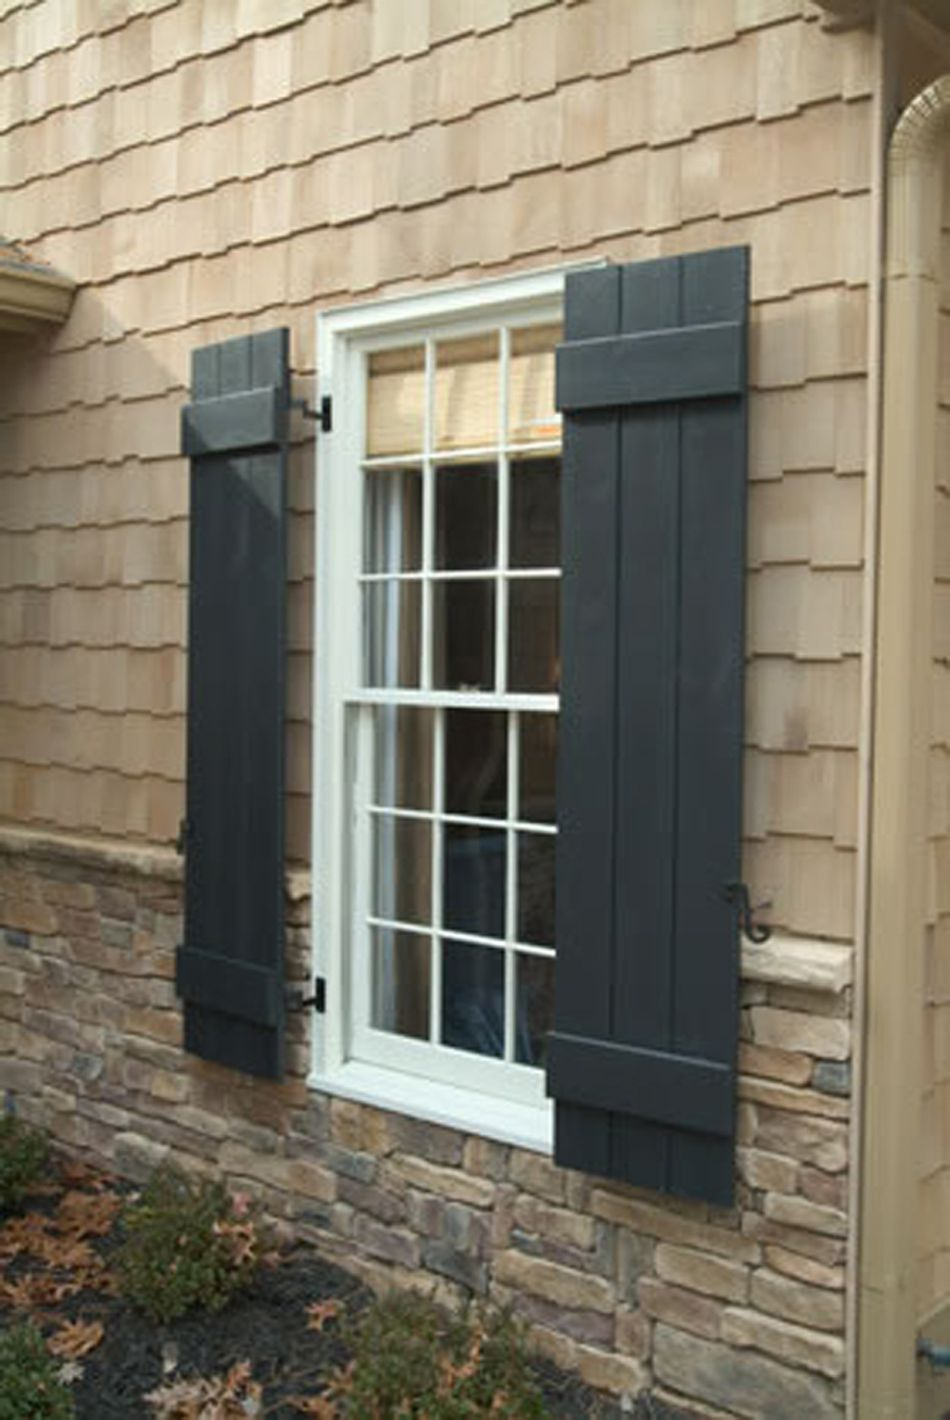 Pin by lana dobbins on home decor ideas house shutters - Exterior wooden shutters for windows ...